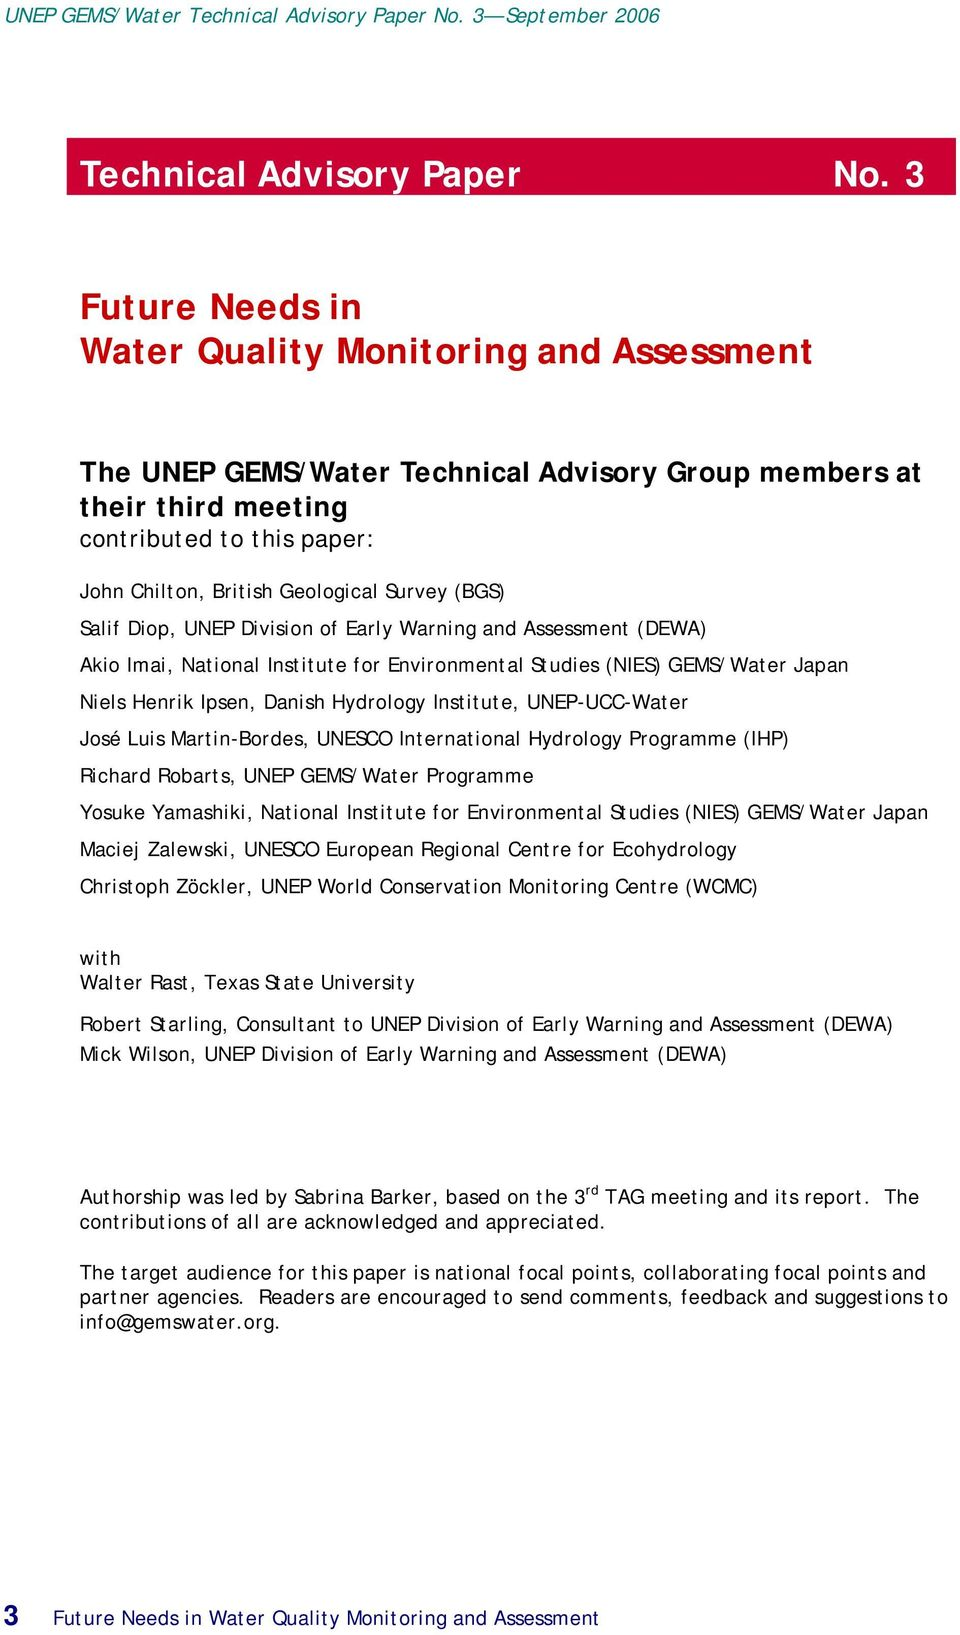 Survey (BGS) Salif Diop, UNEP Division of Early Warning and Assessment (DEWA) Akio Imai, National Institute for Environmental Studies (NIES) GEMS/Water Japan Niels Henrik Ipsen, Danish Hydrology